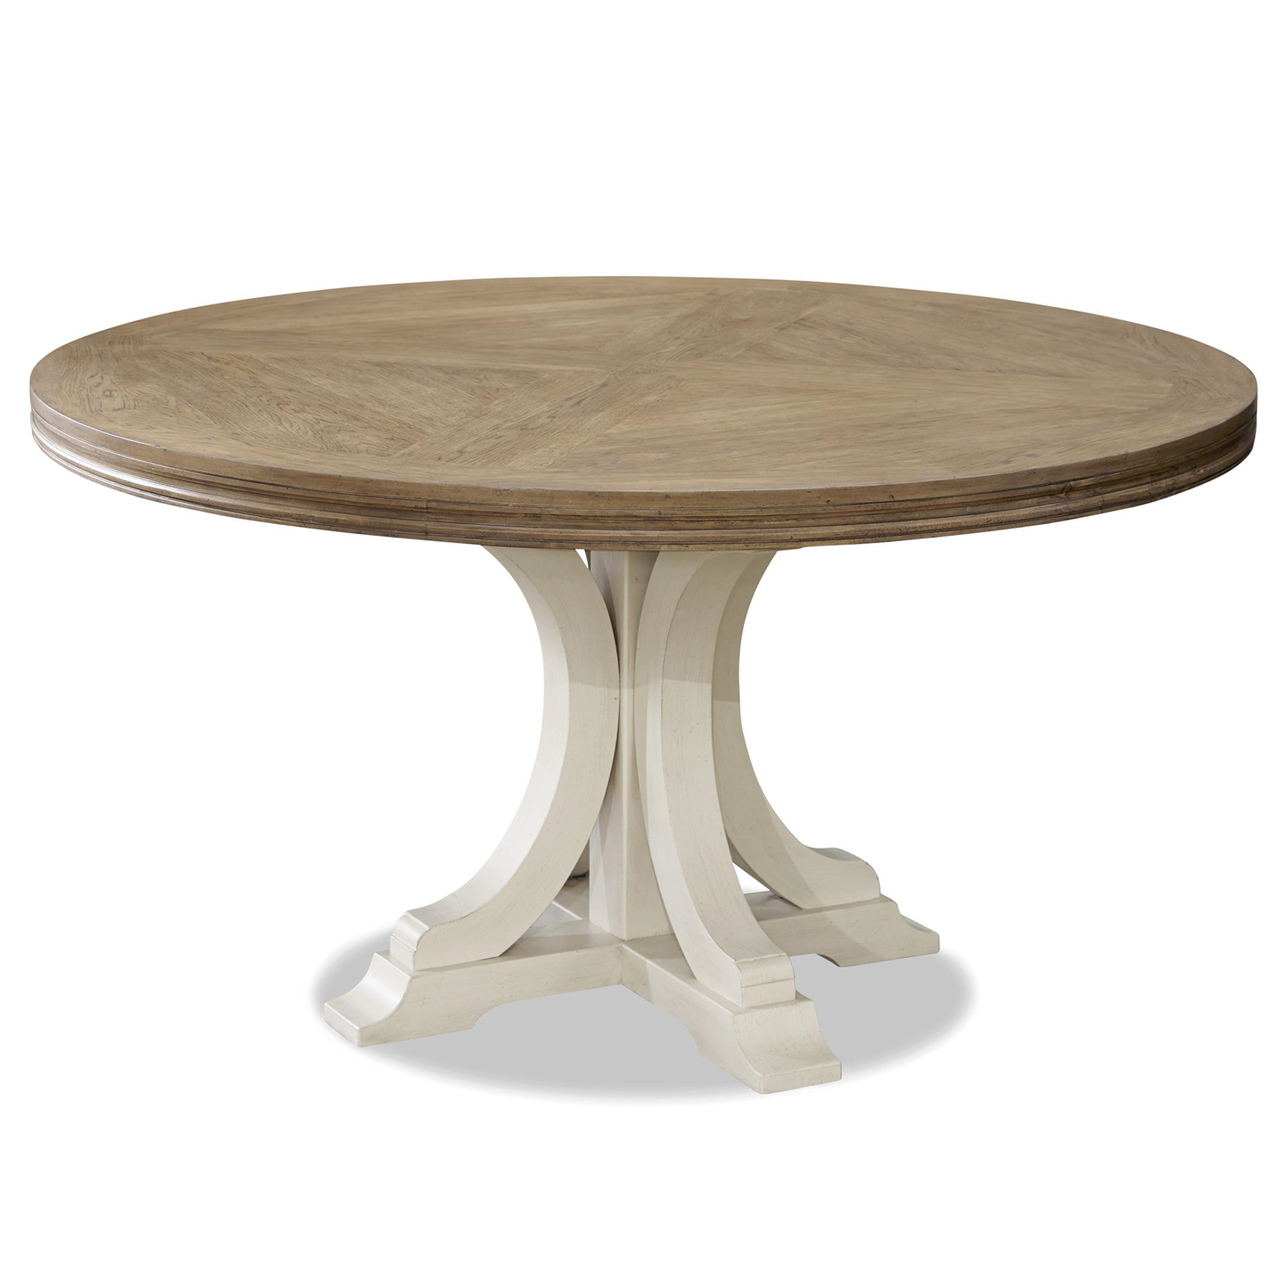 French Modern White Wood Pedestal Round Dining Table 58